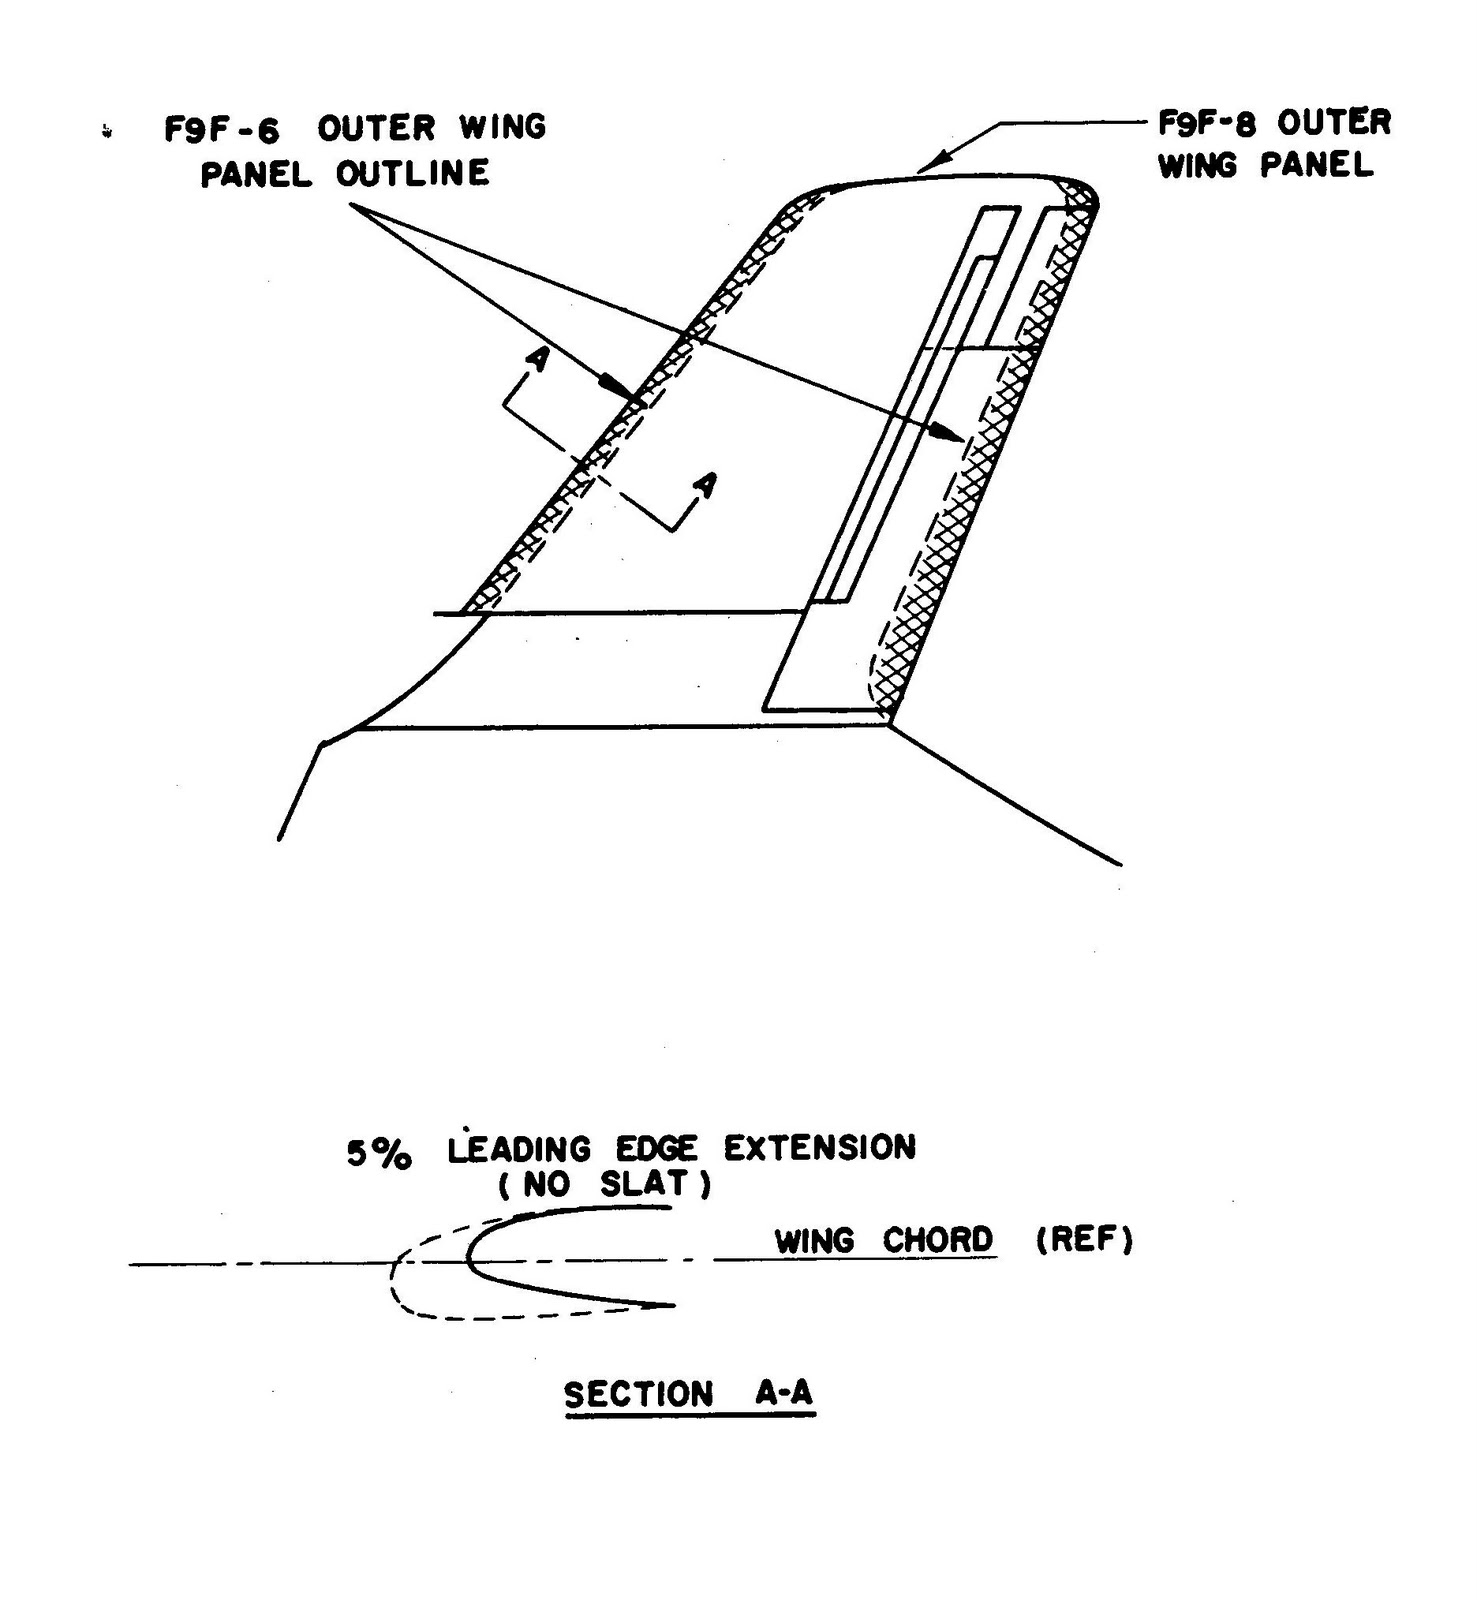 Tailhook topics f9f 6 vs f9f 8 cougars leading edge outboard of the wing fence the chord was also increased aft by enlarging the flap and extending the trailing edge outboard of the flap hexwebz Choice Image